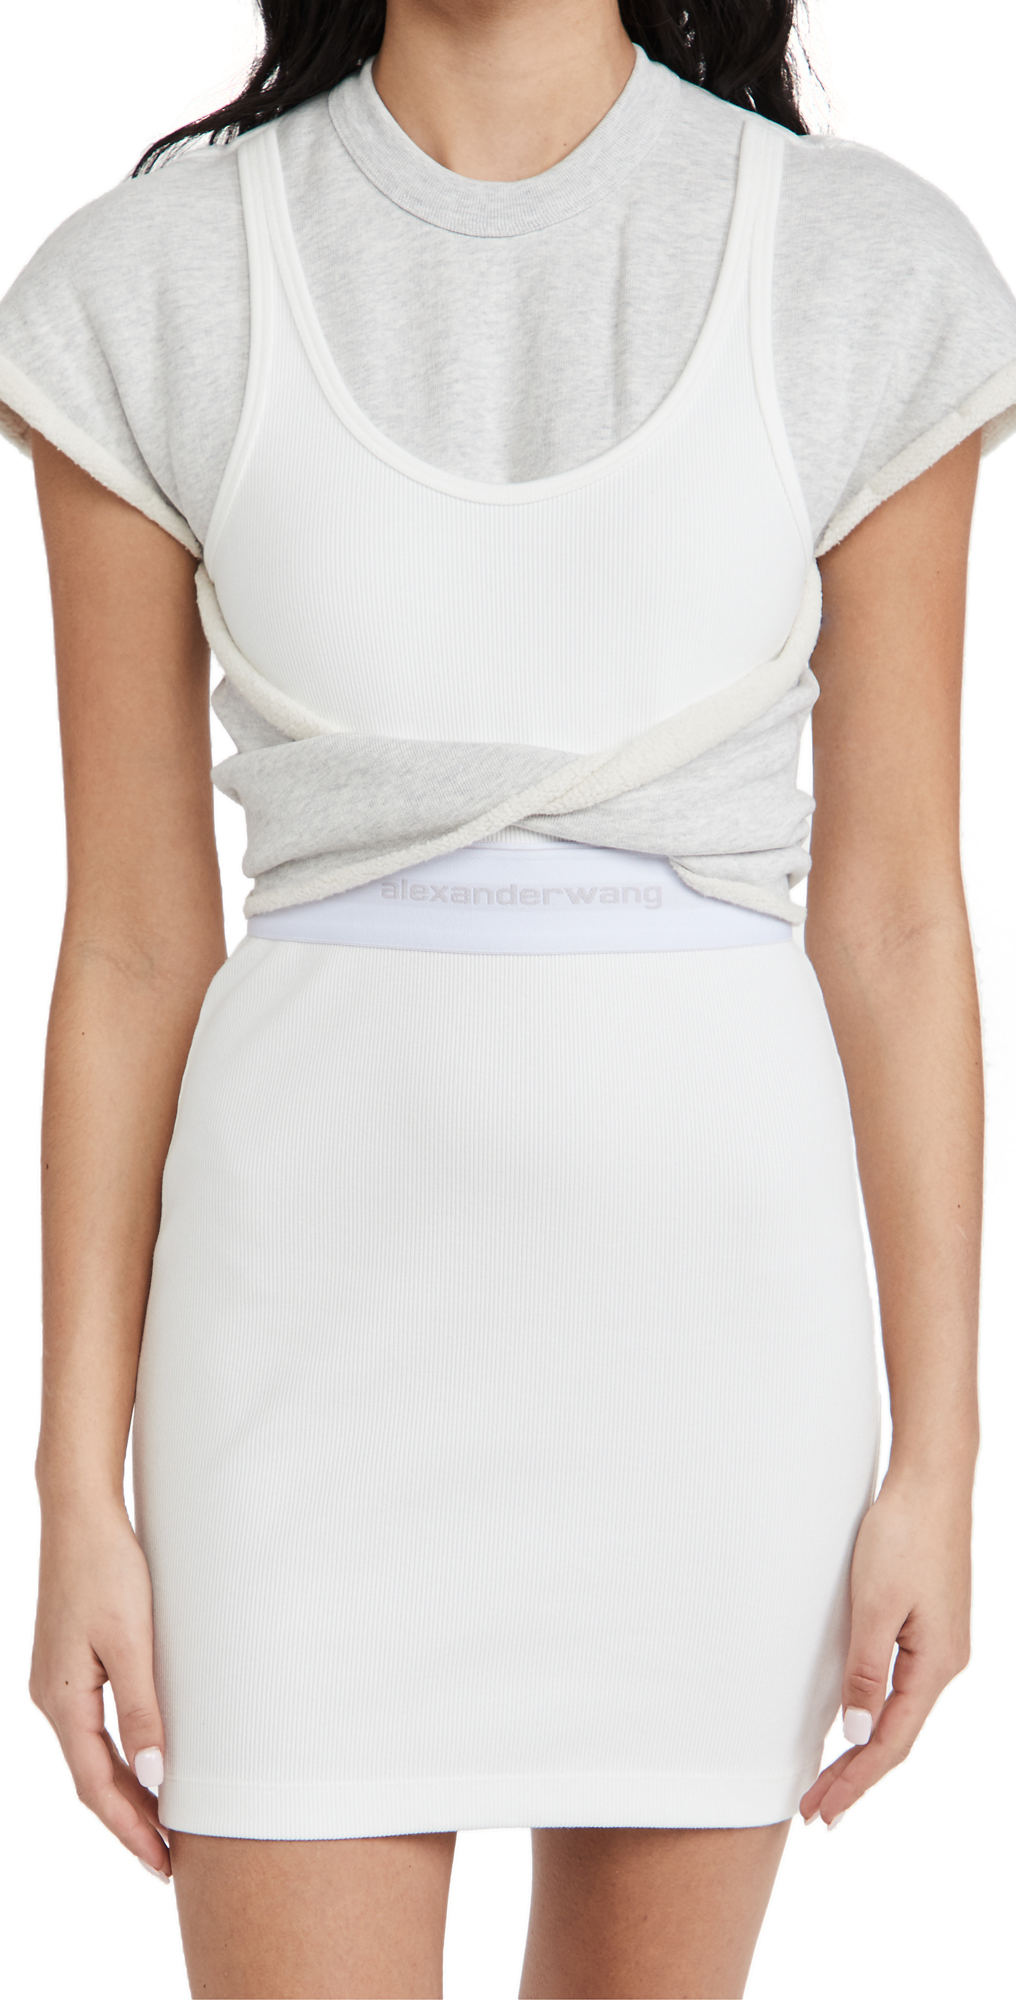 alexanderwang.t Hybrid Tank Sweatshirt Dress